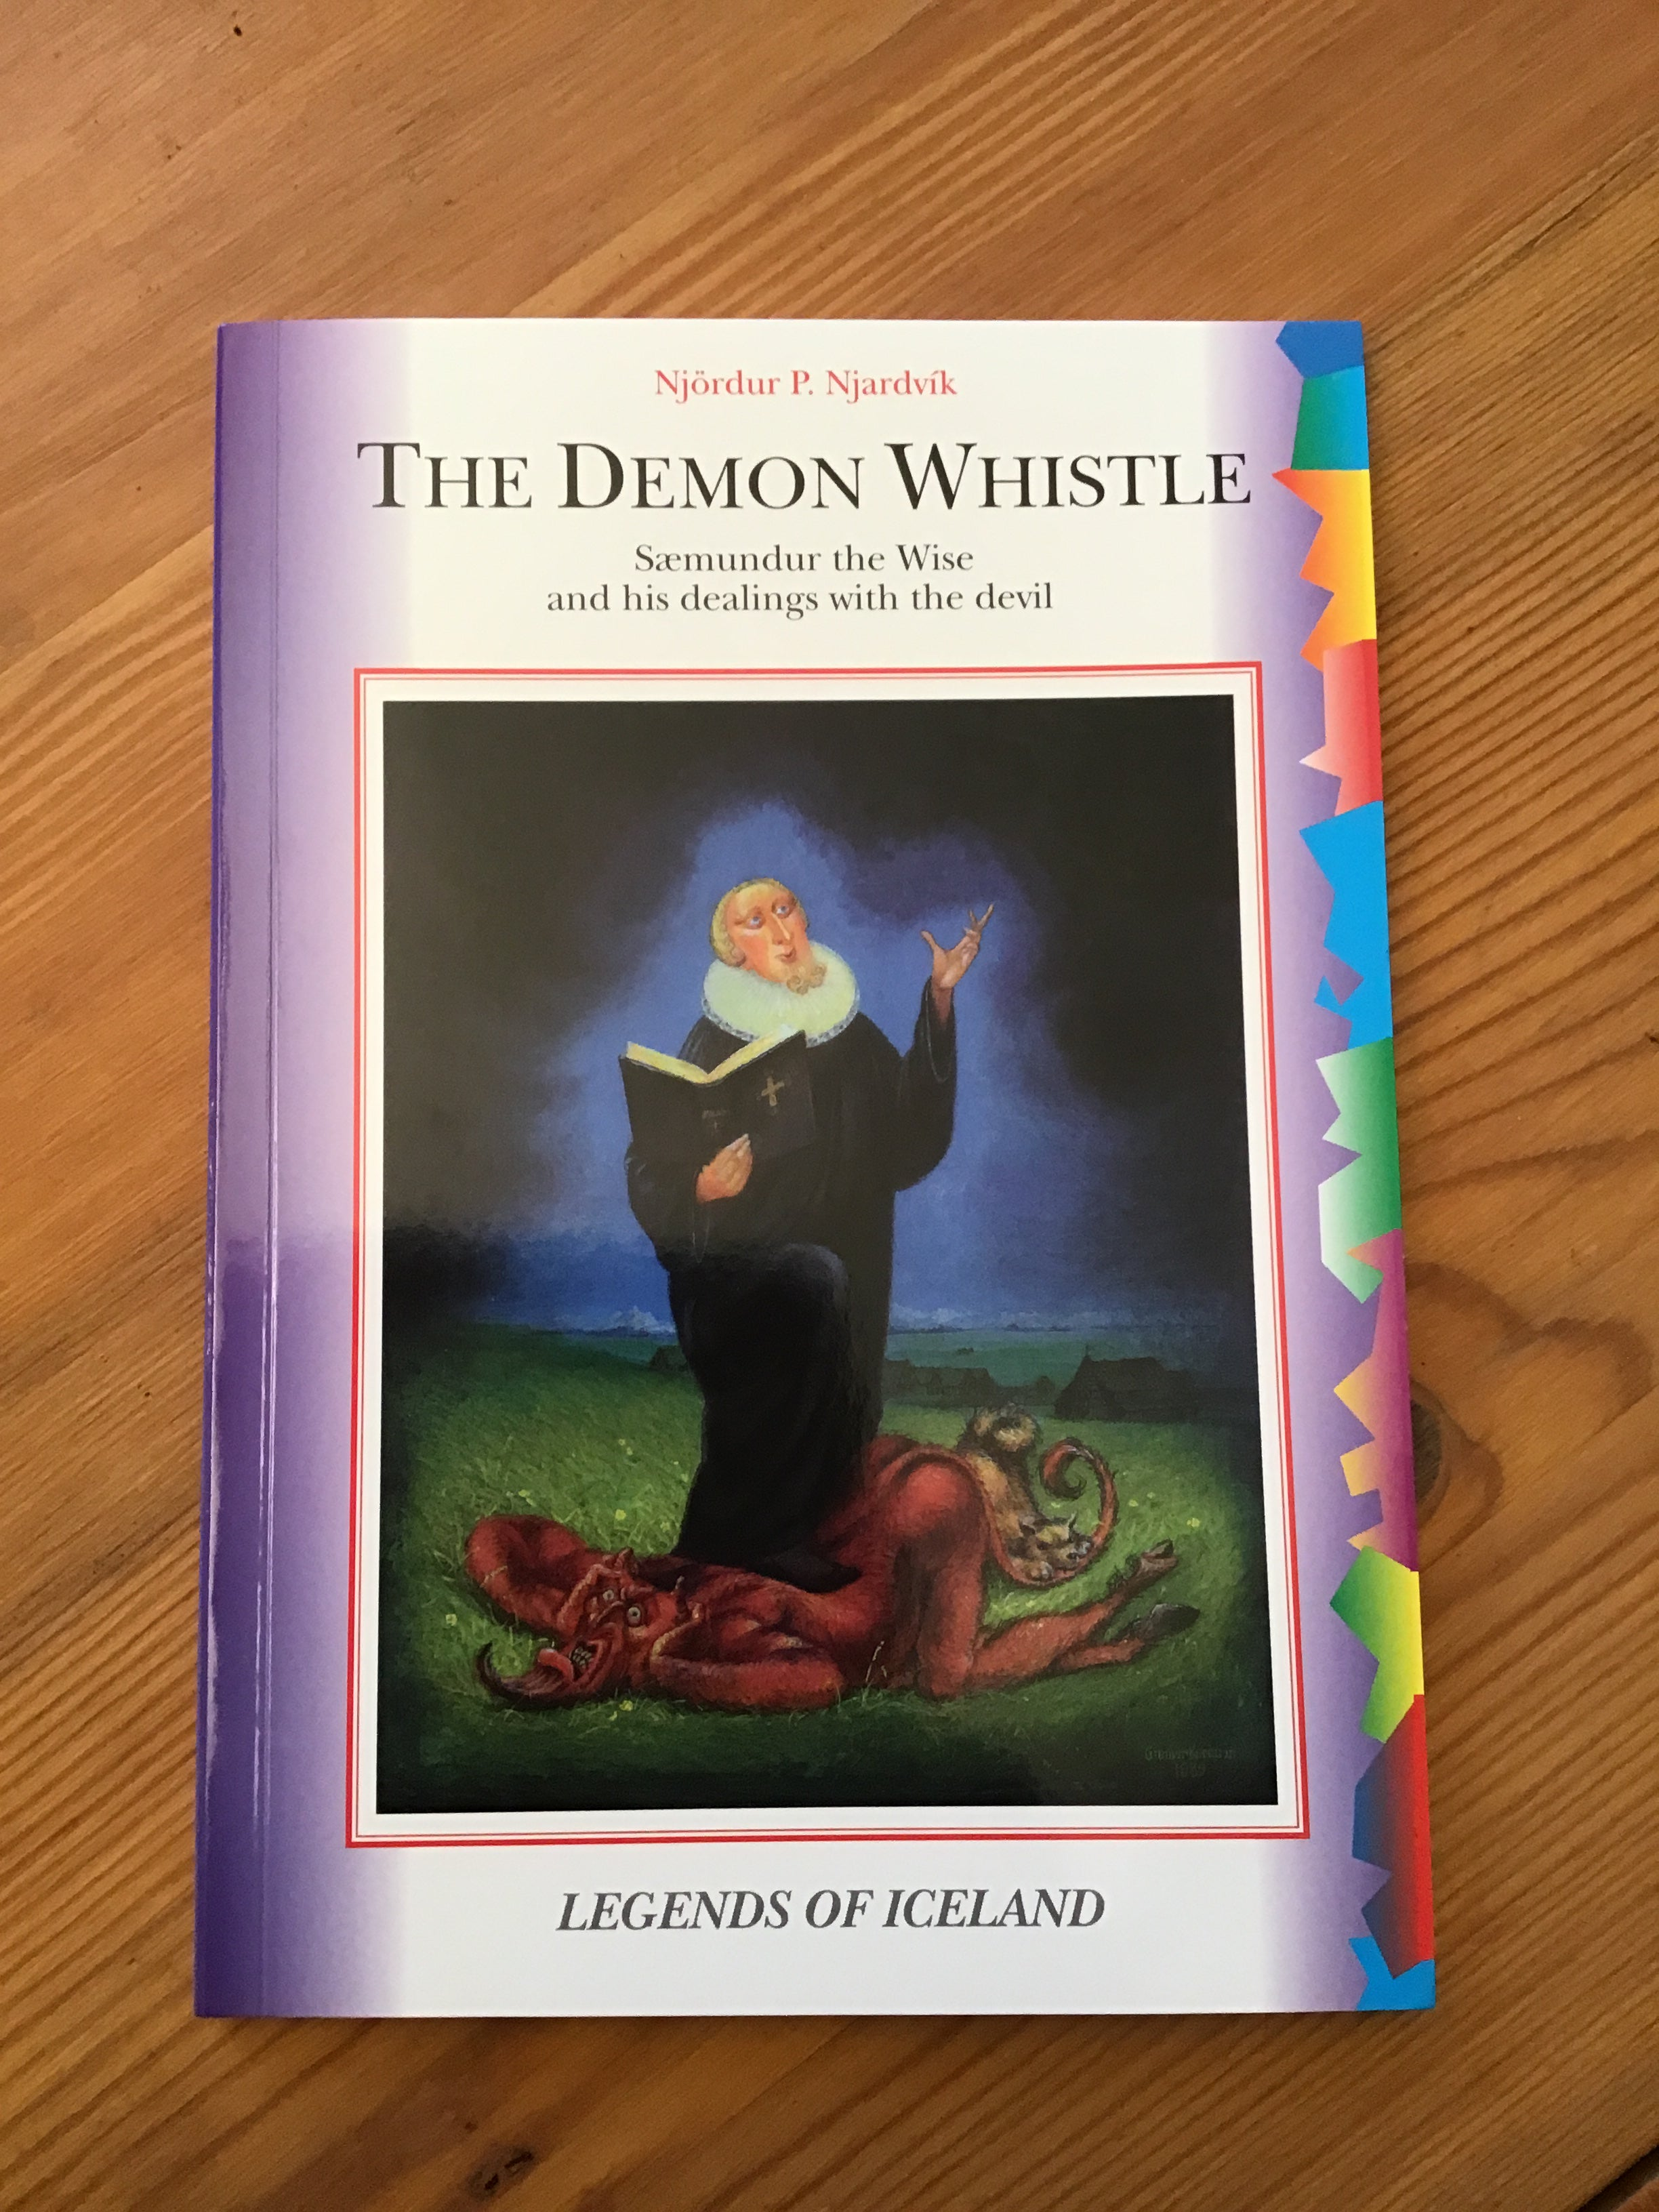 The Demon Whistle - Sæmundur the Wise and his dealings with the devil